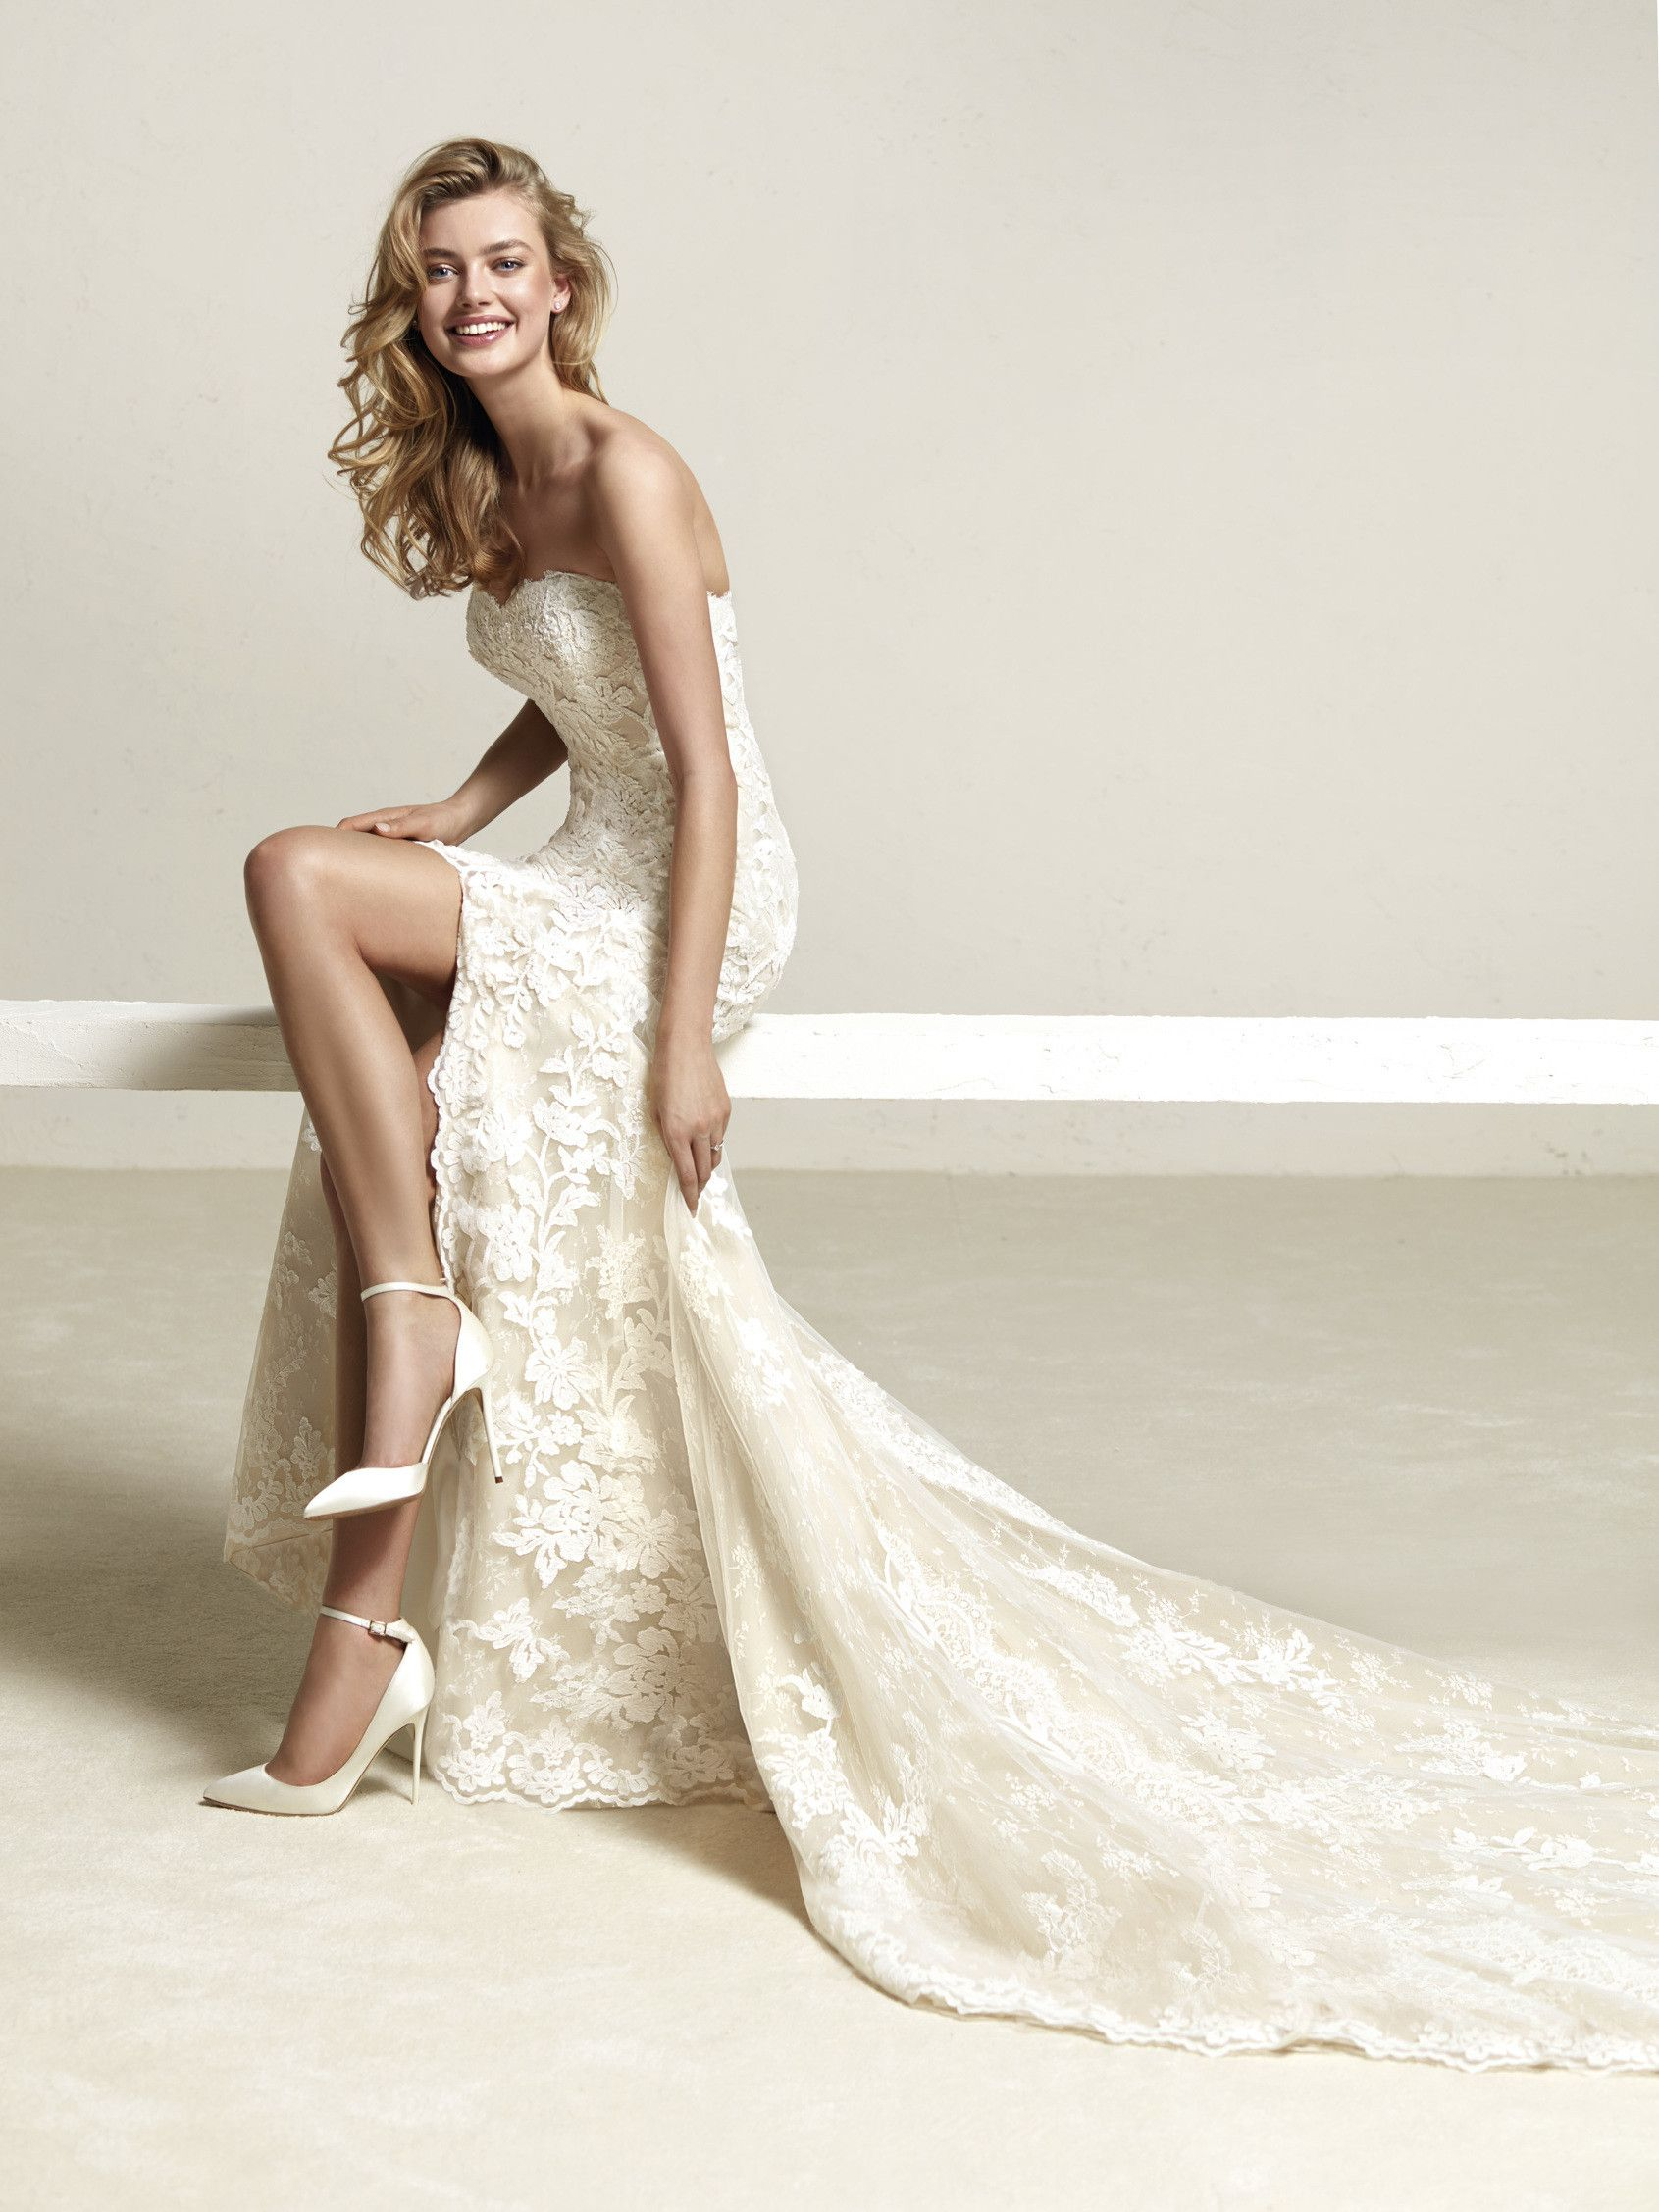 Wedding dress full skirt and lace